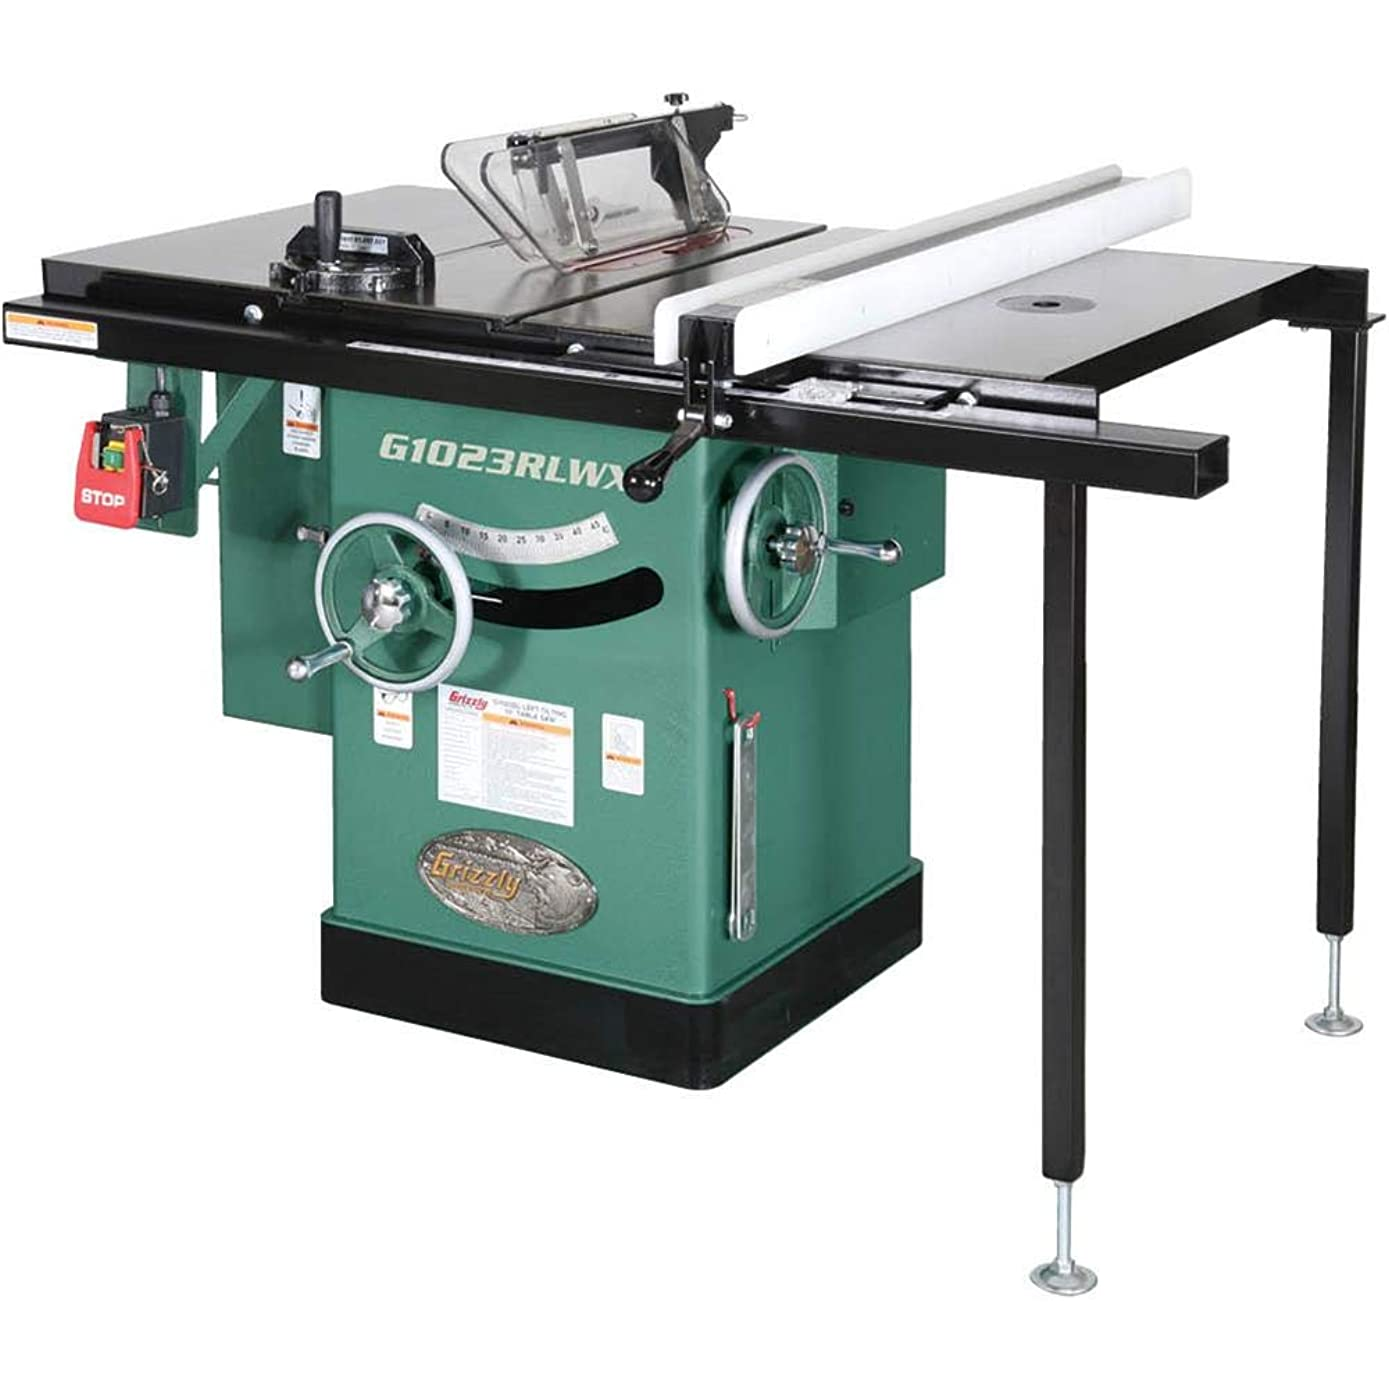 Grizzly G1023RLWX Cabinet Left-Tilting Table Saw, 10